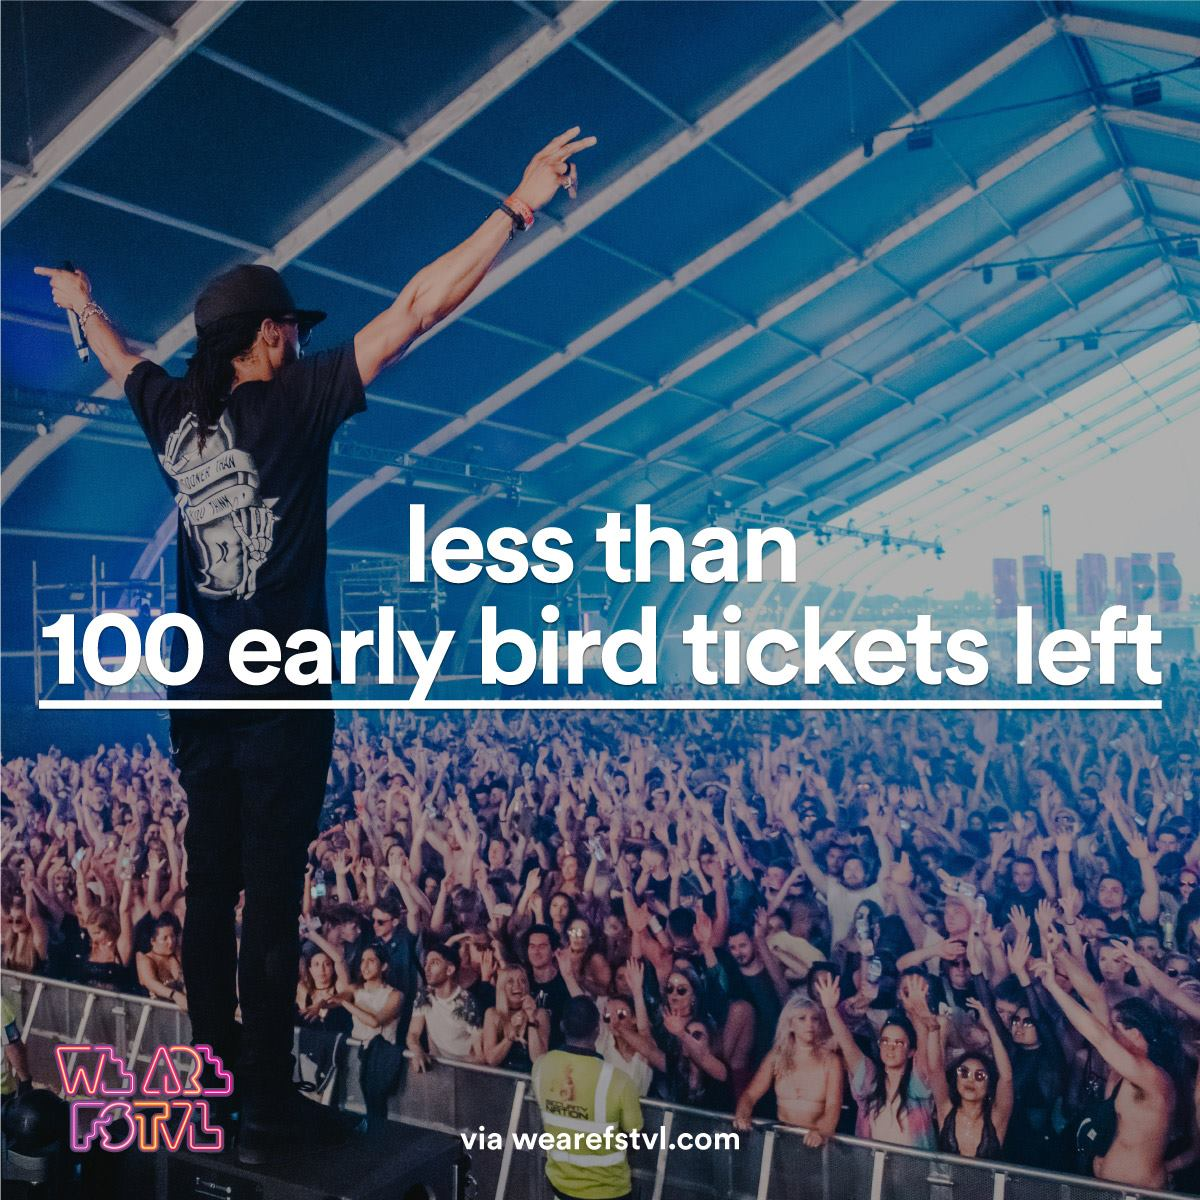 We are FSTVL news:  LESS THAN 100 TICKETS LEFT! Final chance to grab an early bird ticket before th…